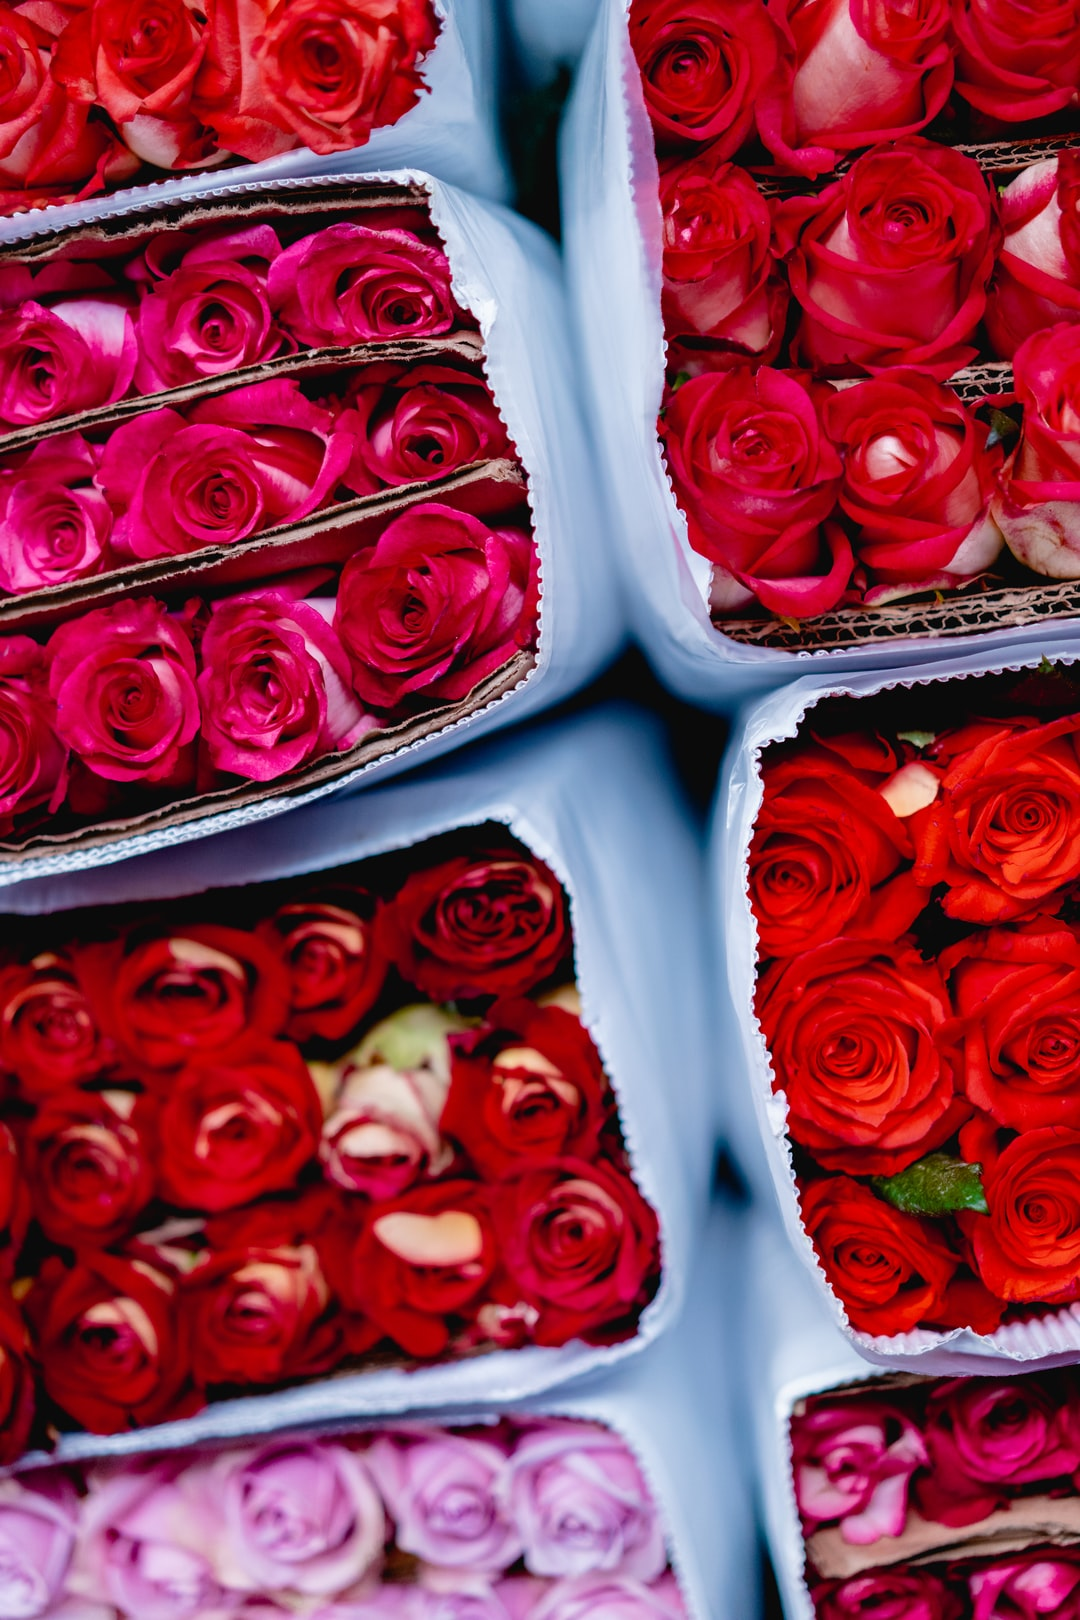 Red roses in boxes